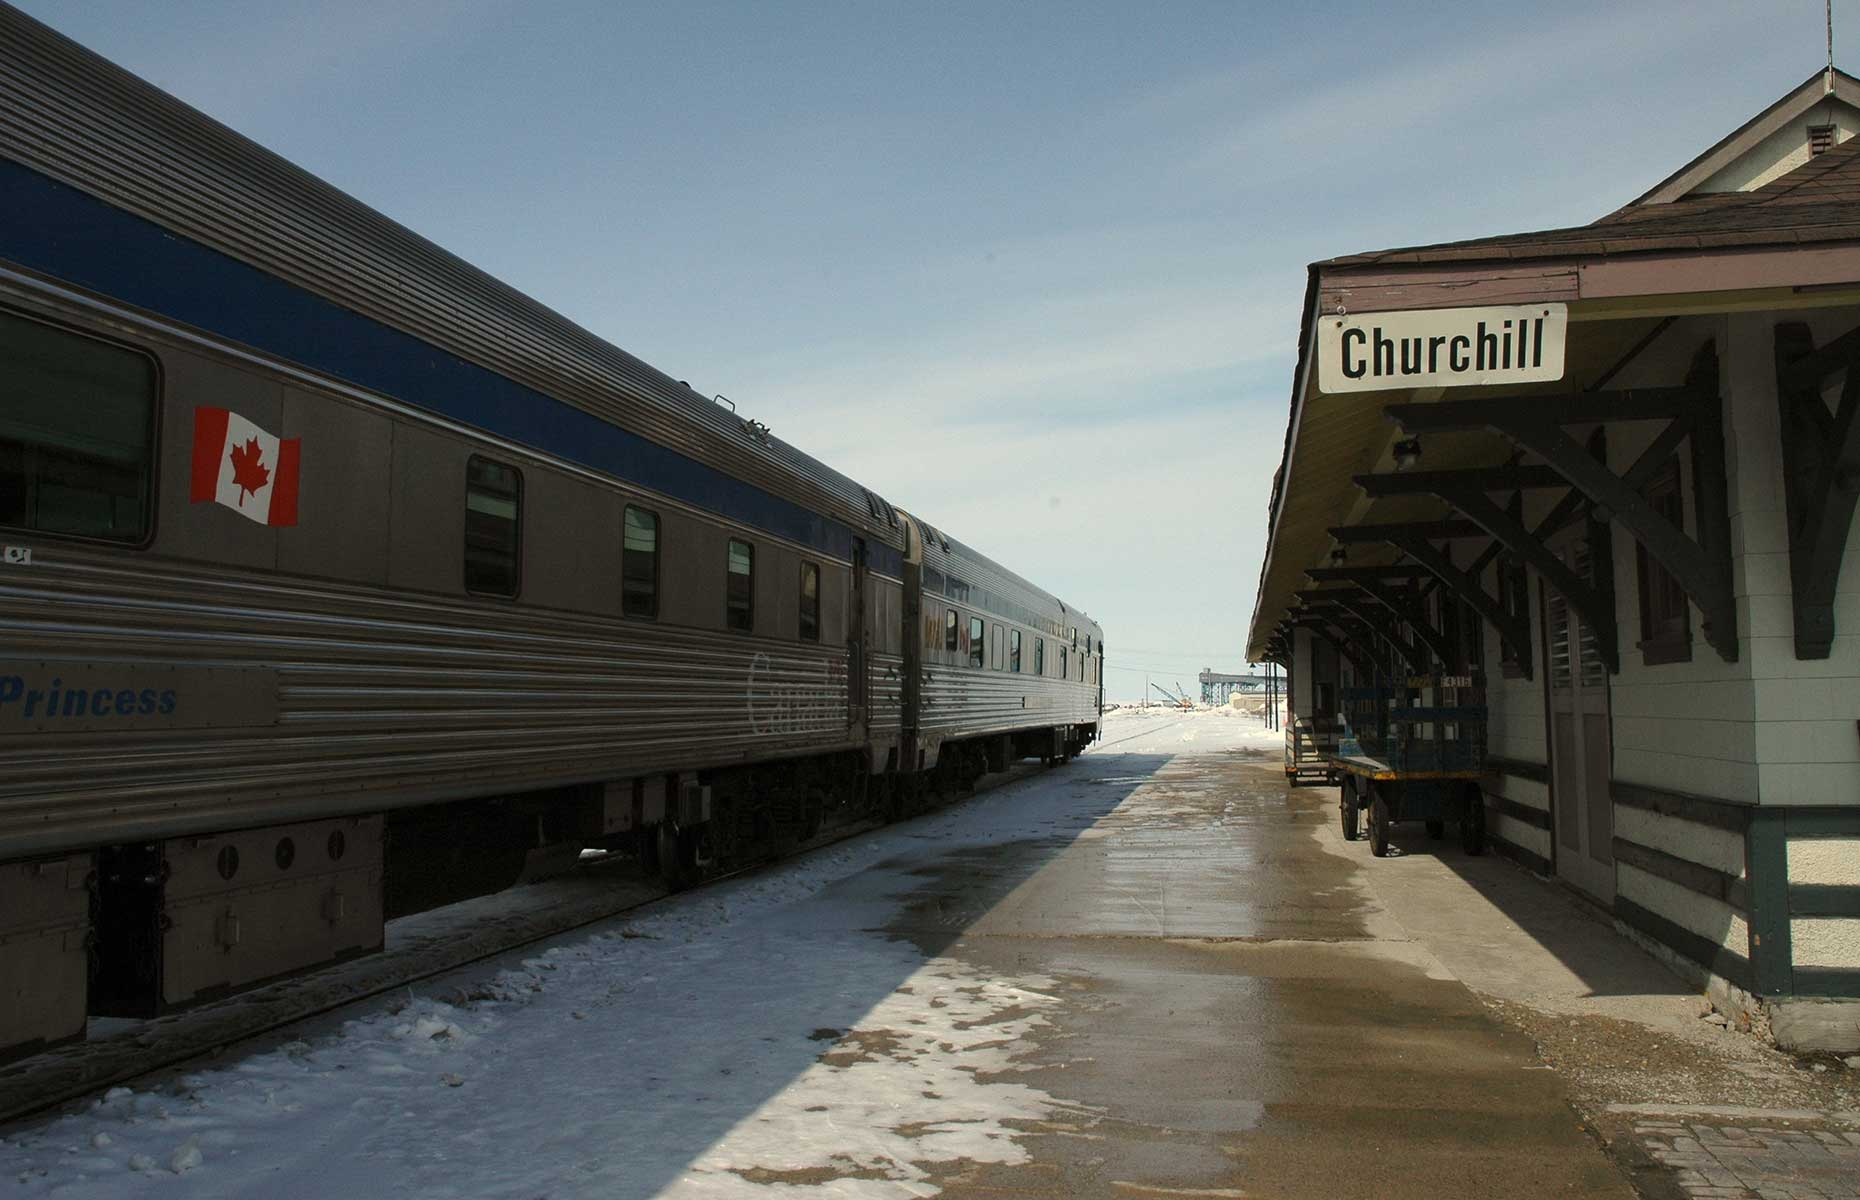 Churchill Station is a lifeline in this remote part of the world